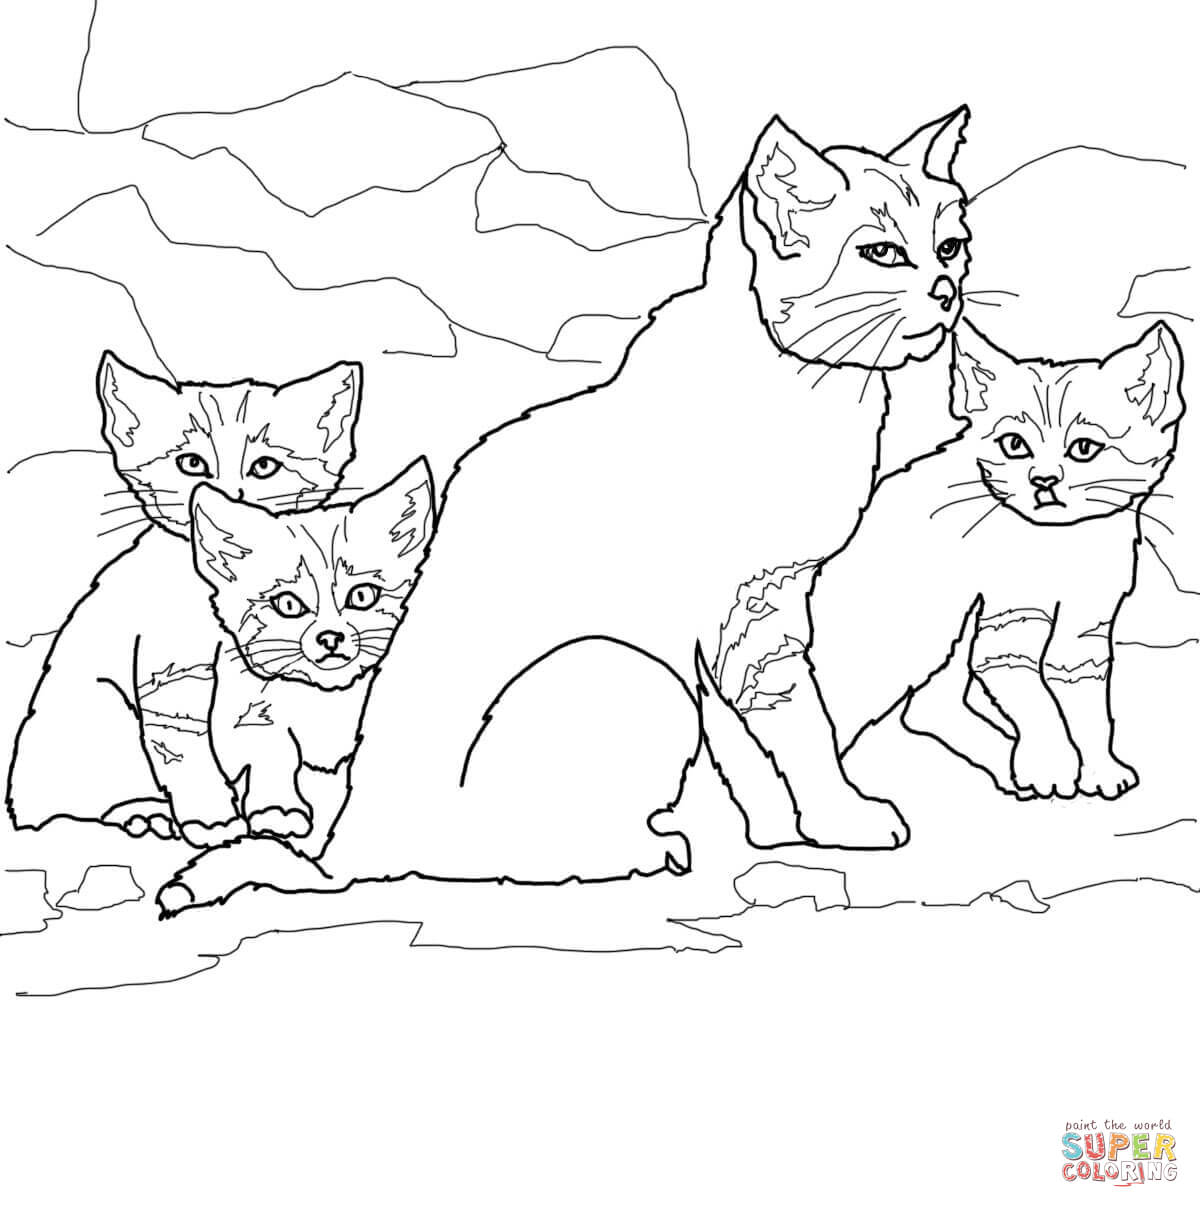 Cat And Kitten Drawing at GetDrawings.com | Free for personal use ...